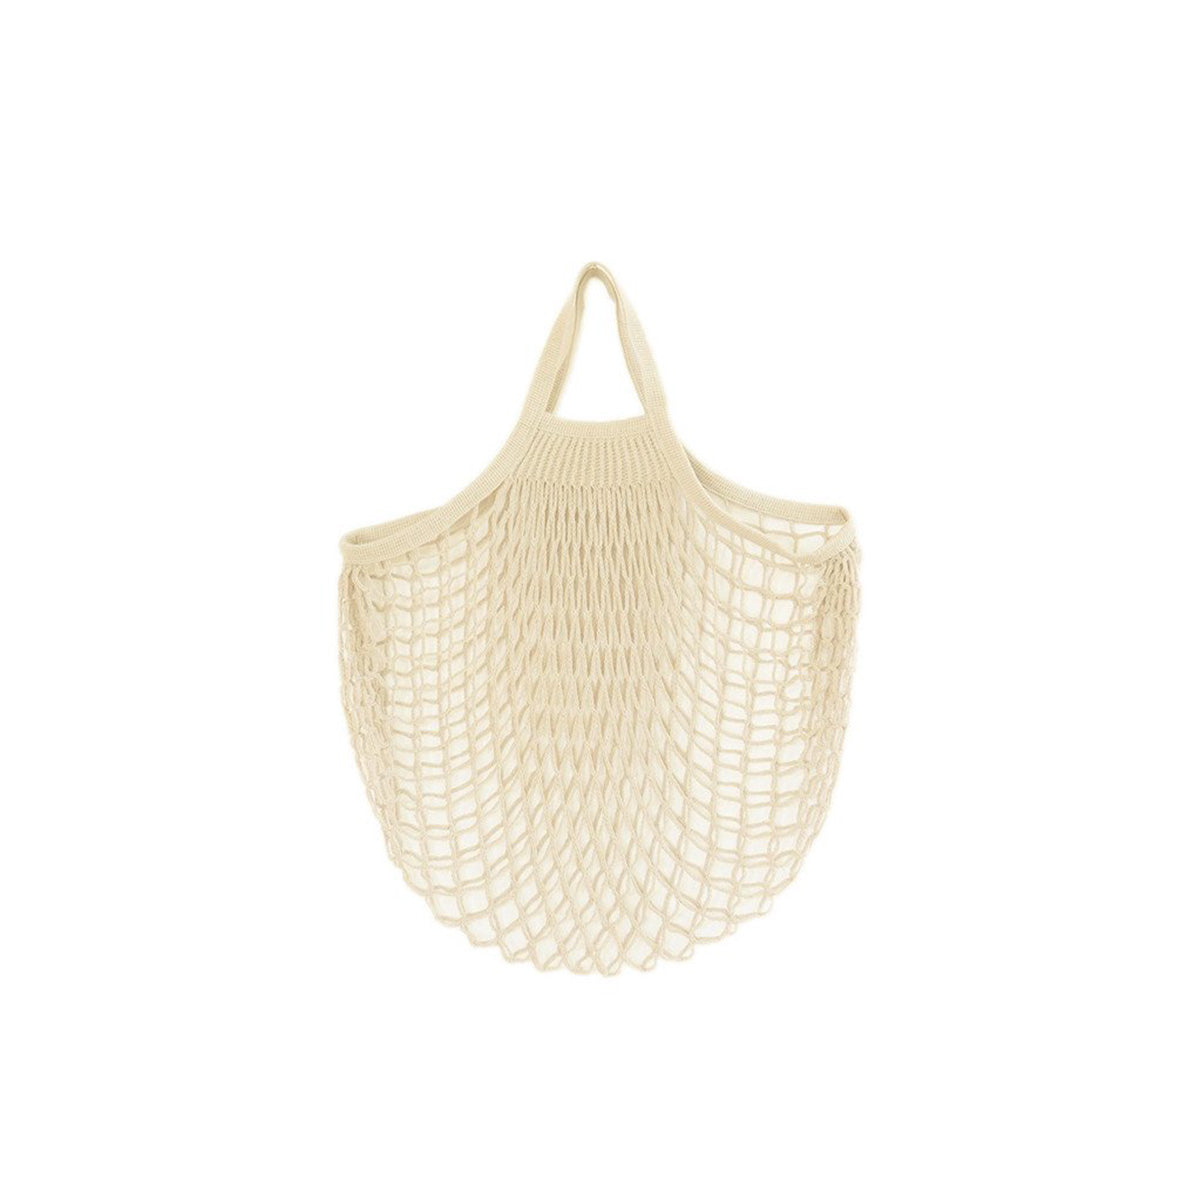 Filt France Net Bags - Short Handle Natural Net Bag - Net Bags - Sustainable Living - Environmentally Friendly - Net Bags - Say No To Plastic - Natural | Freyr and Fell